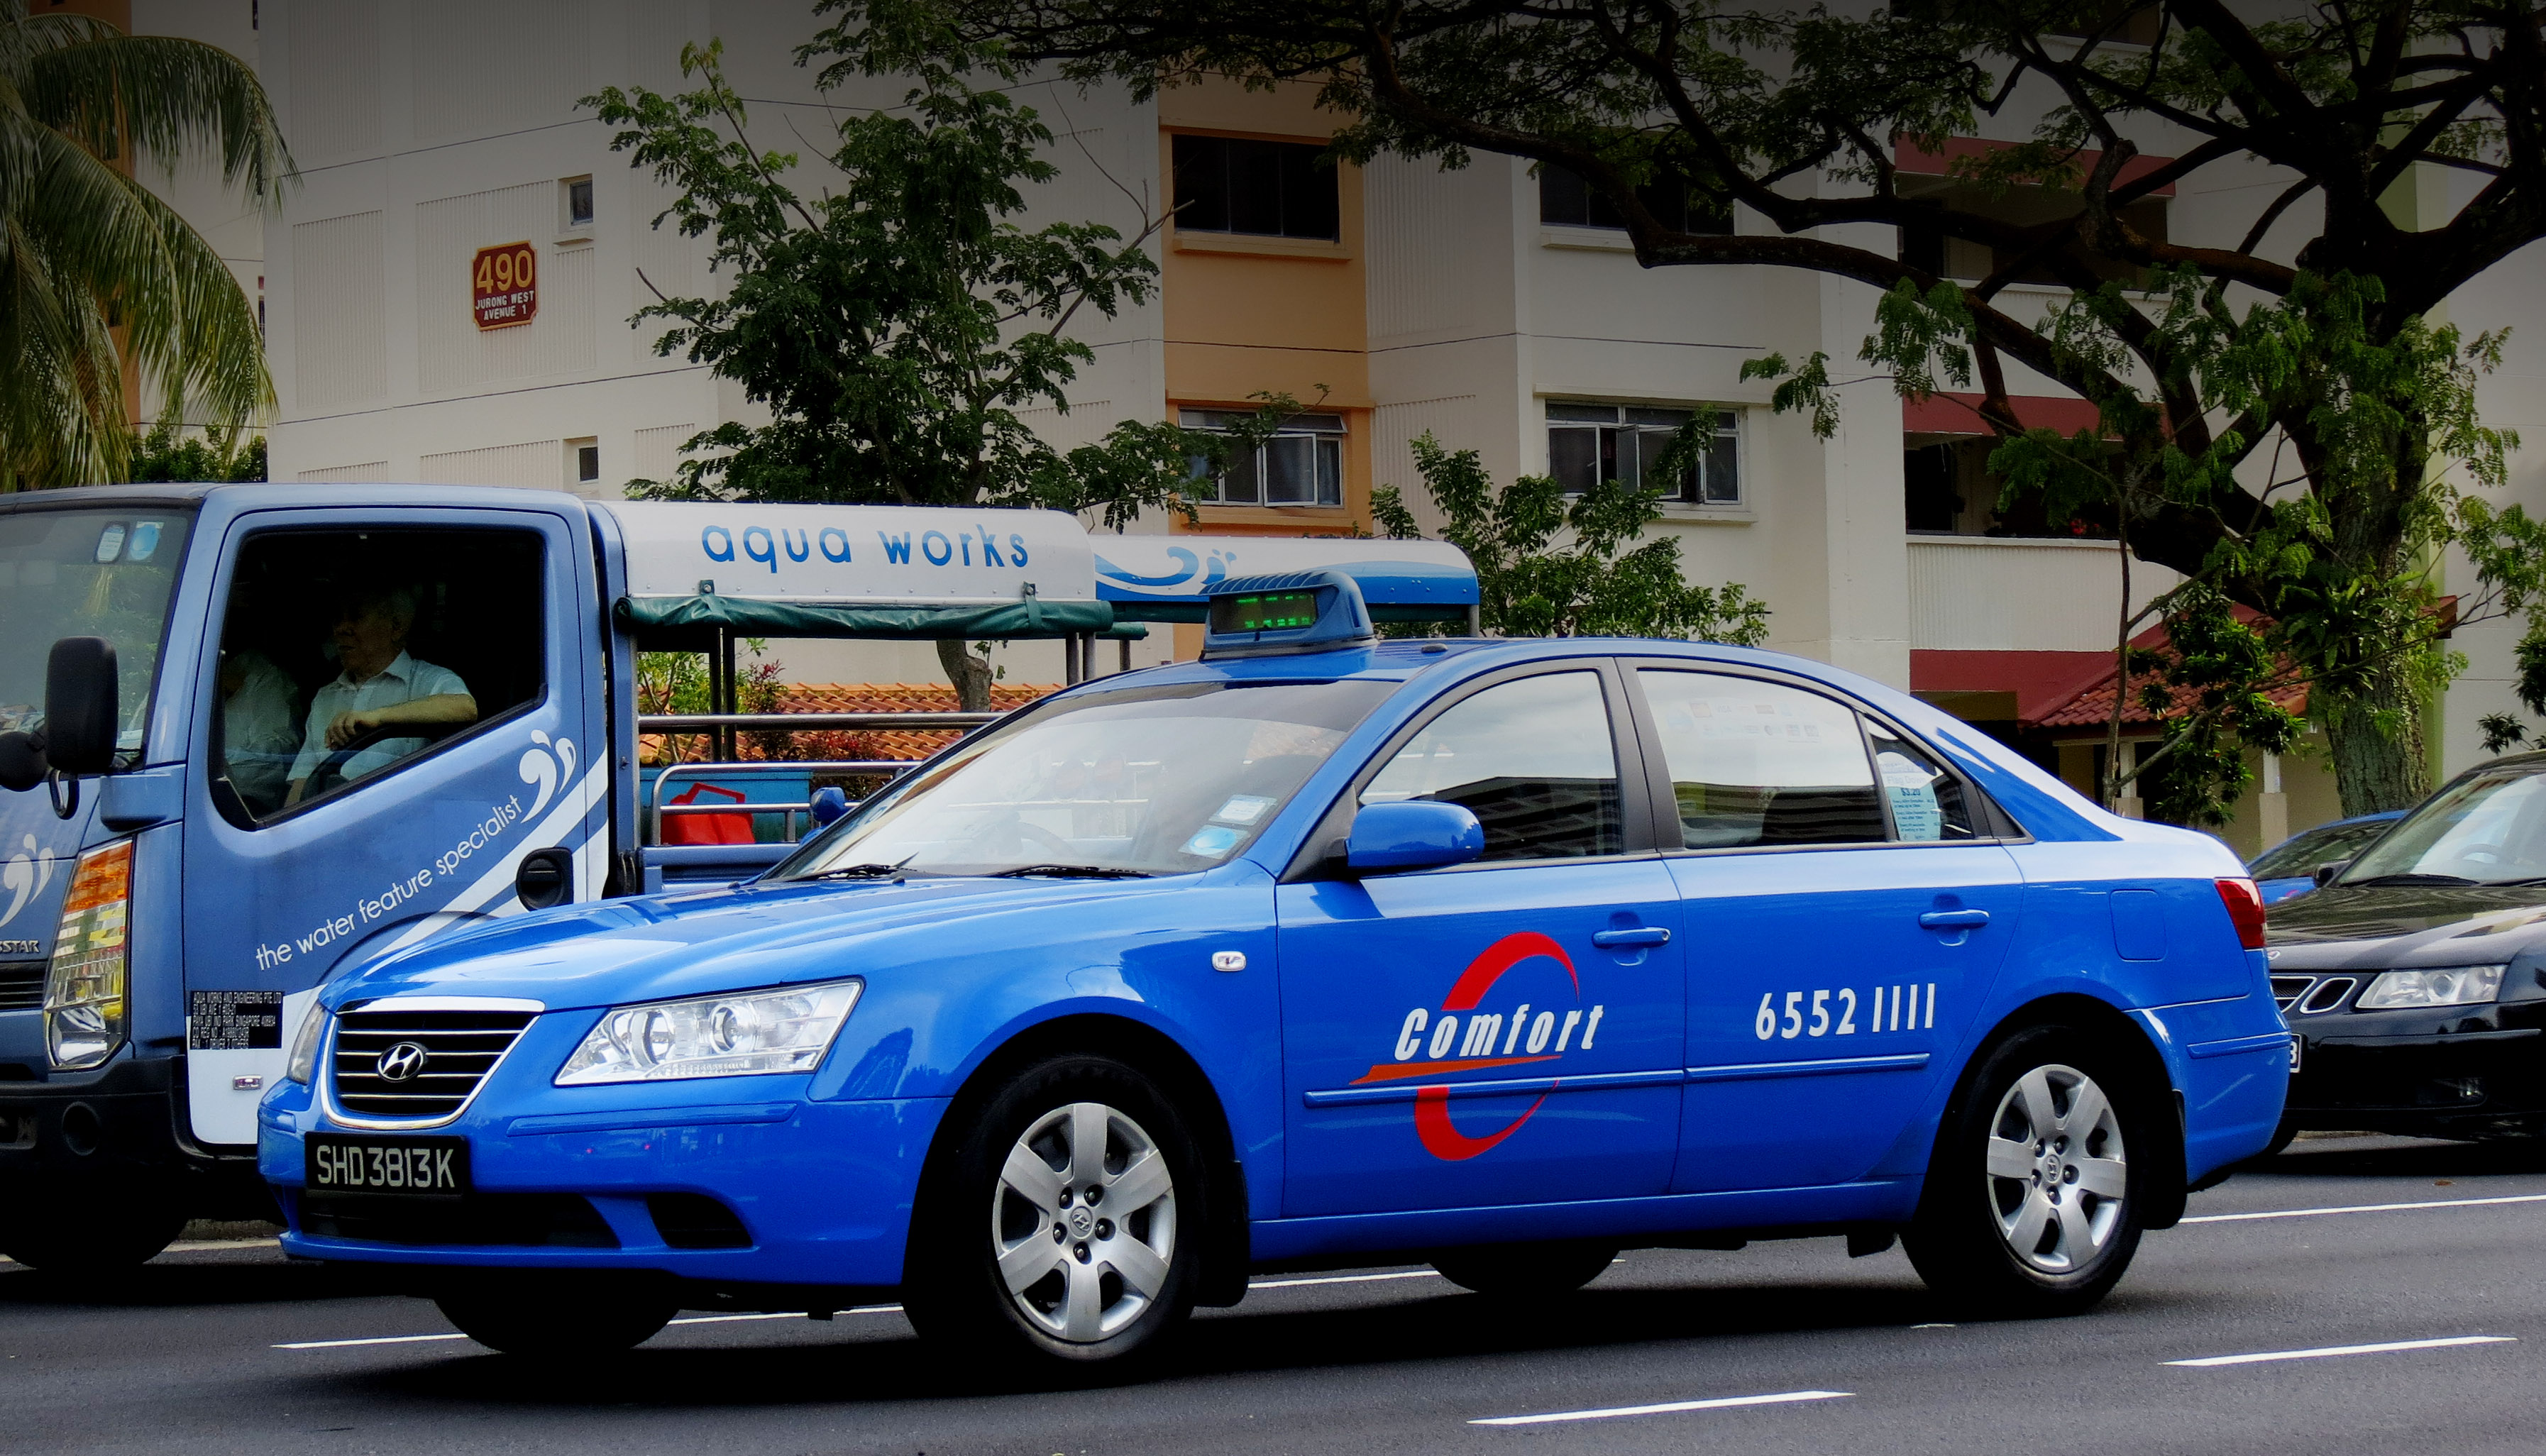 ComfortDelGro taxi. Photo courtesy: Wikimedia